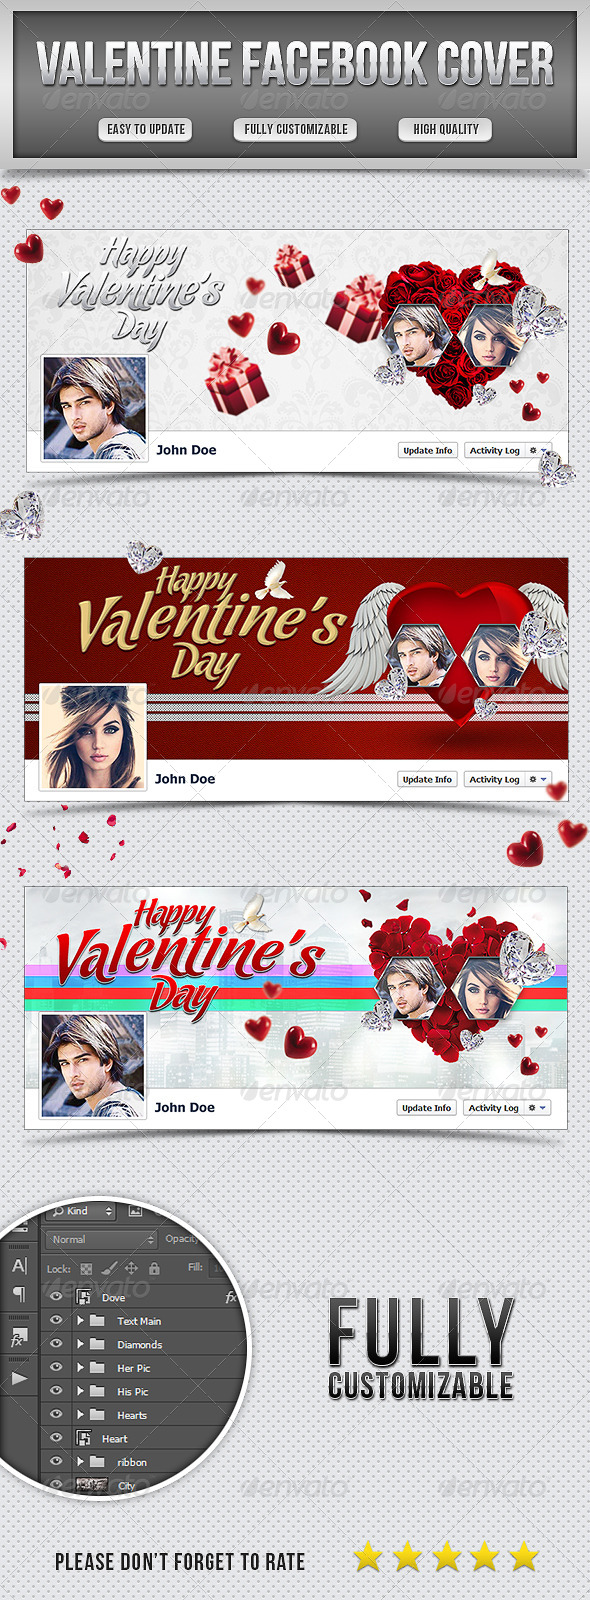 GraphicRiver Valentine Facebook Cover 6693933